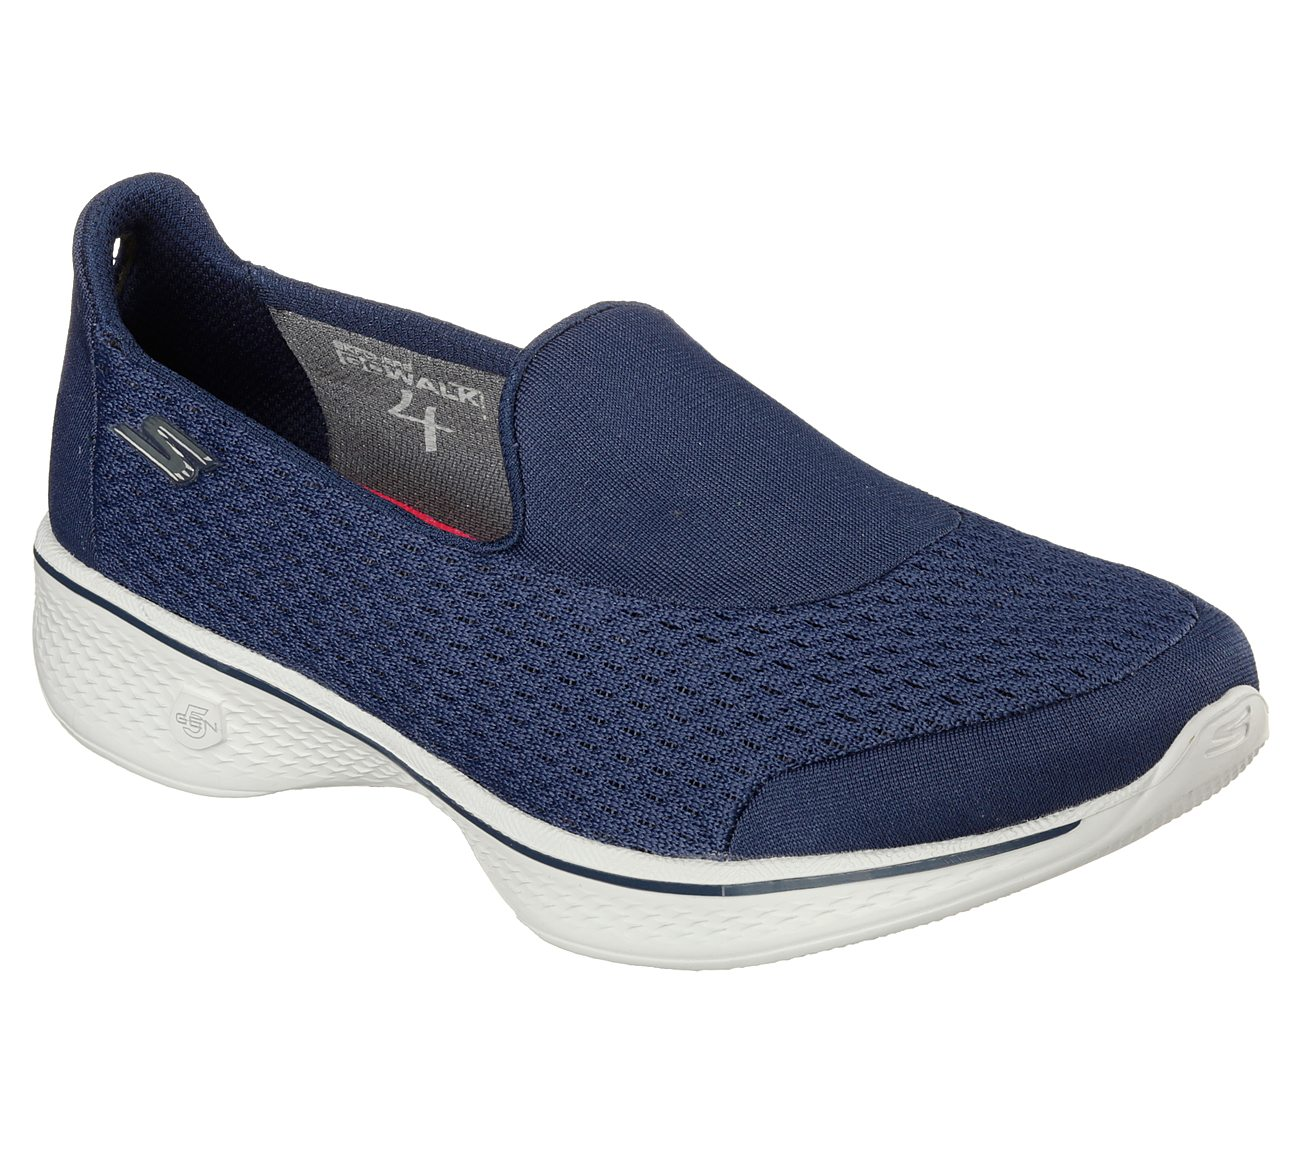 Skechers GOwalk 4 - Pursuit